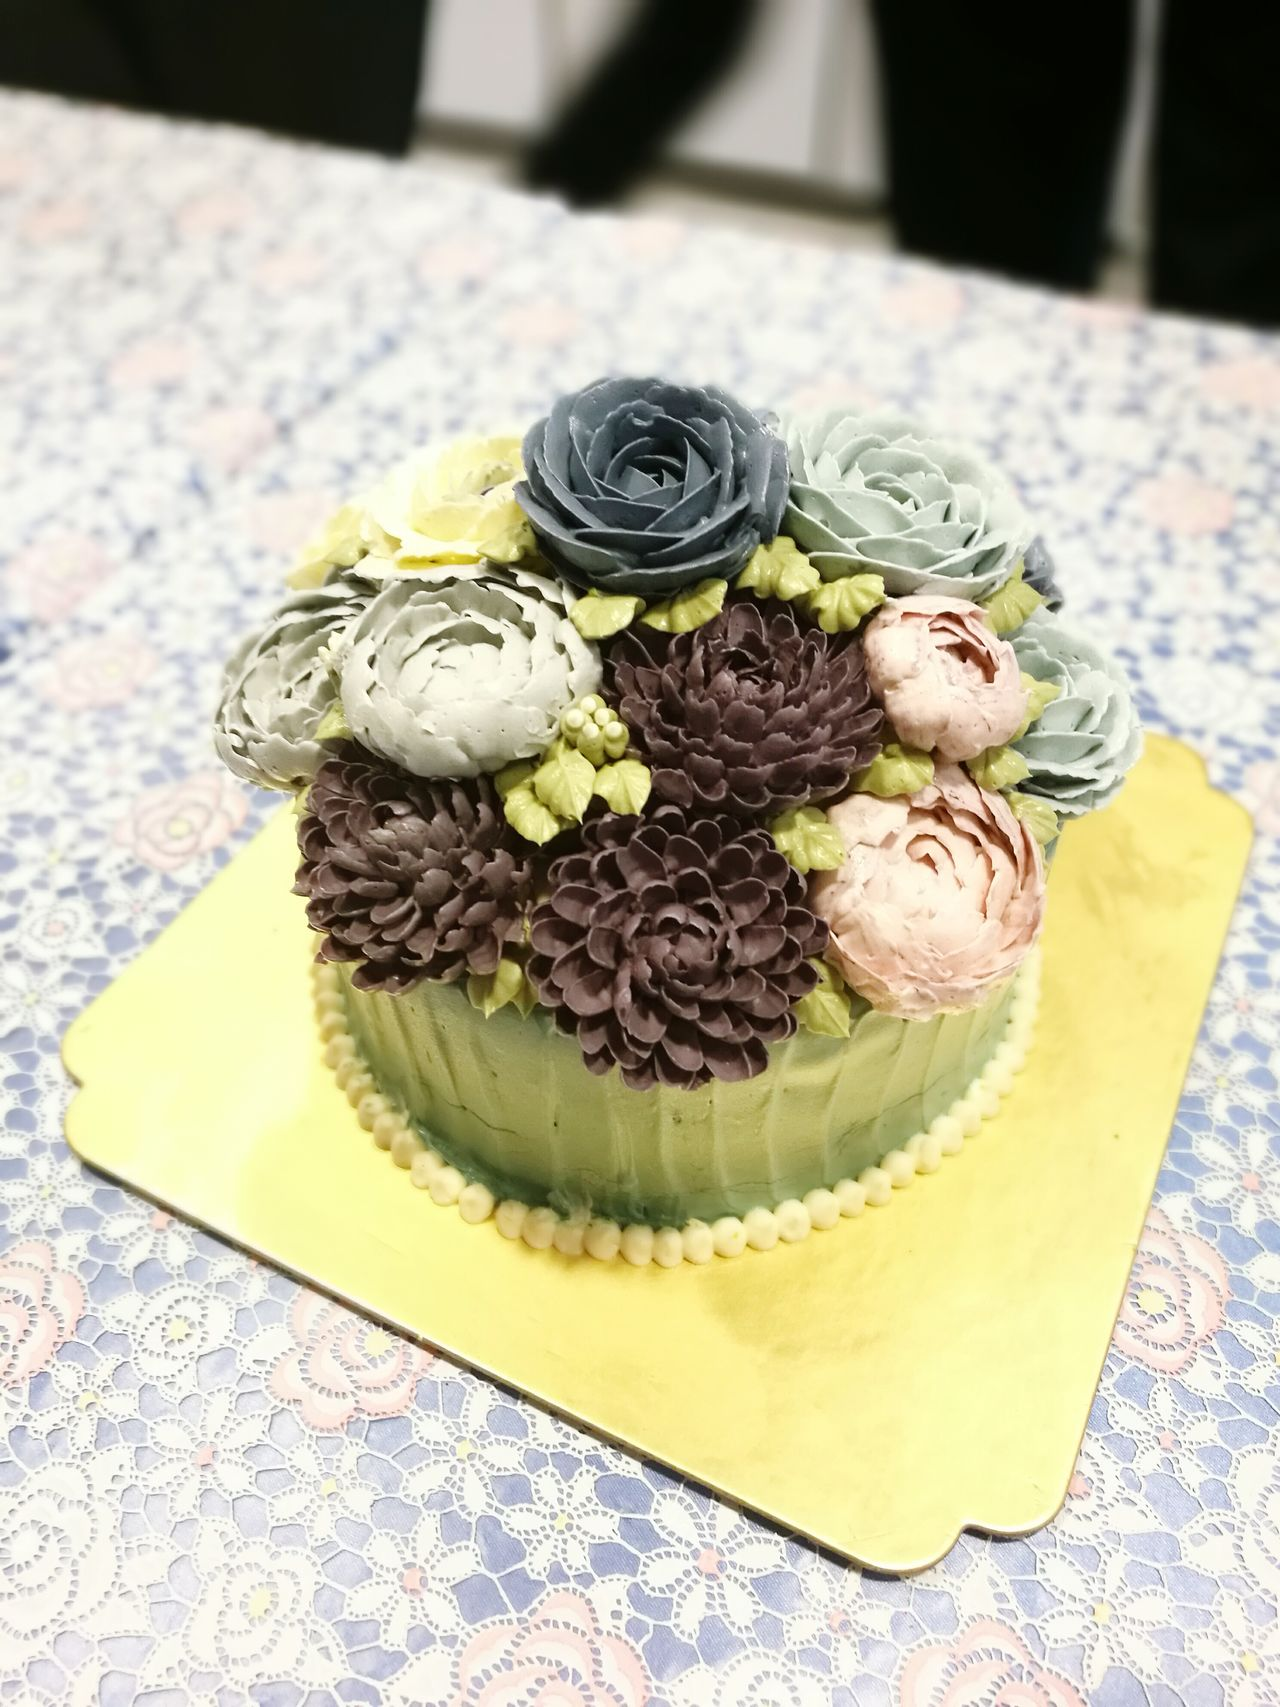 Cake Flower Cake Flower Blossom Delicious Sweet Indulgence Freshness Food Temptation Serving Size Ready-to-eat Indoors  Food Styling No People Close-up Day Beautiful Dessert Time Dessert Wonderful Moment Happy Cakelover Redvelvet Blue